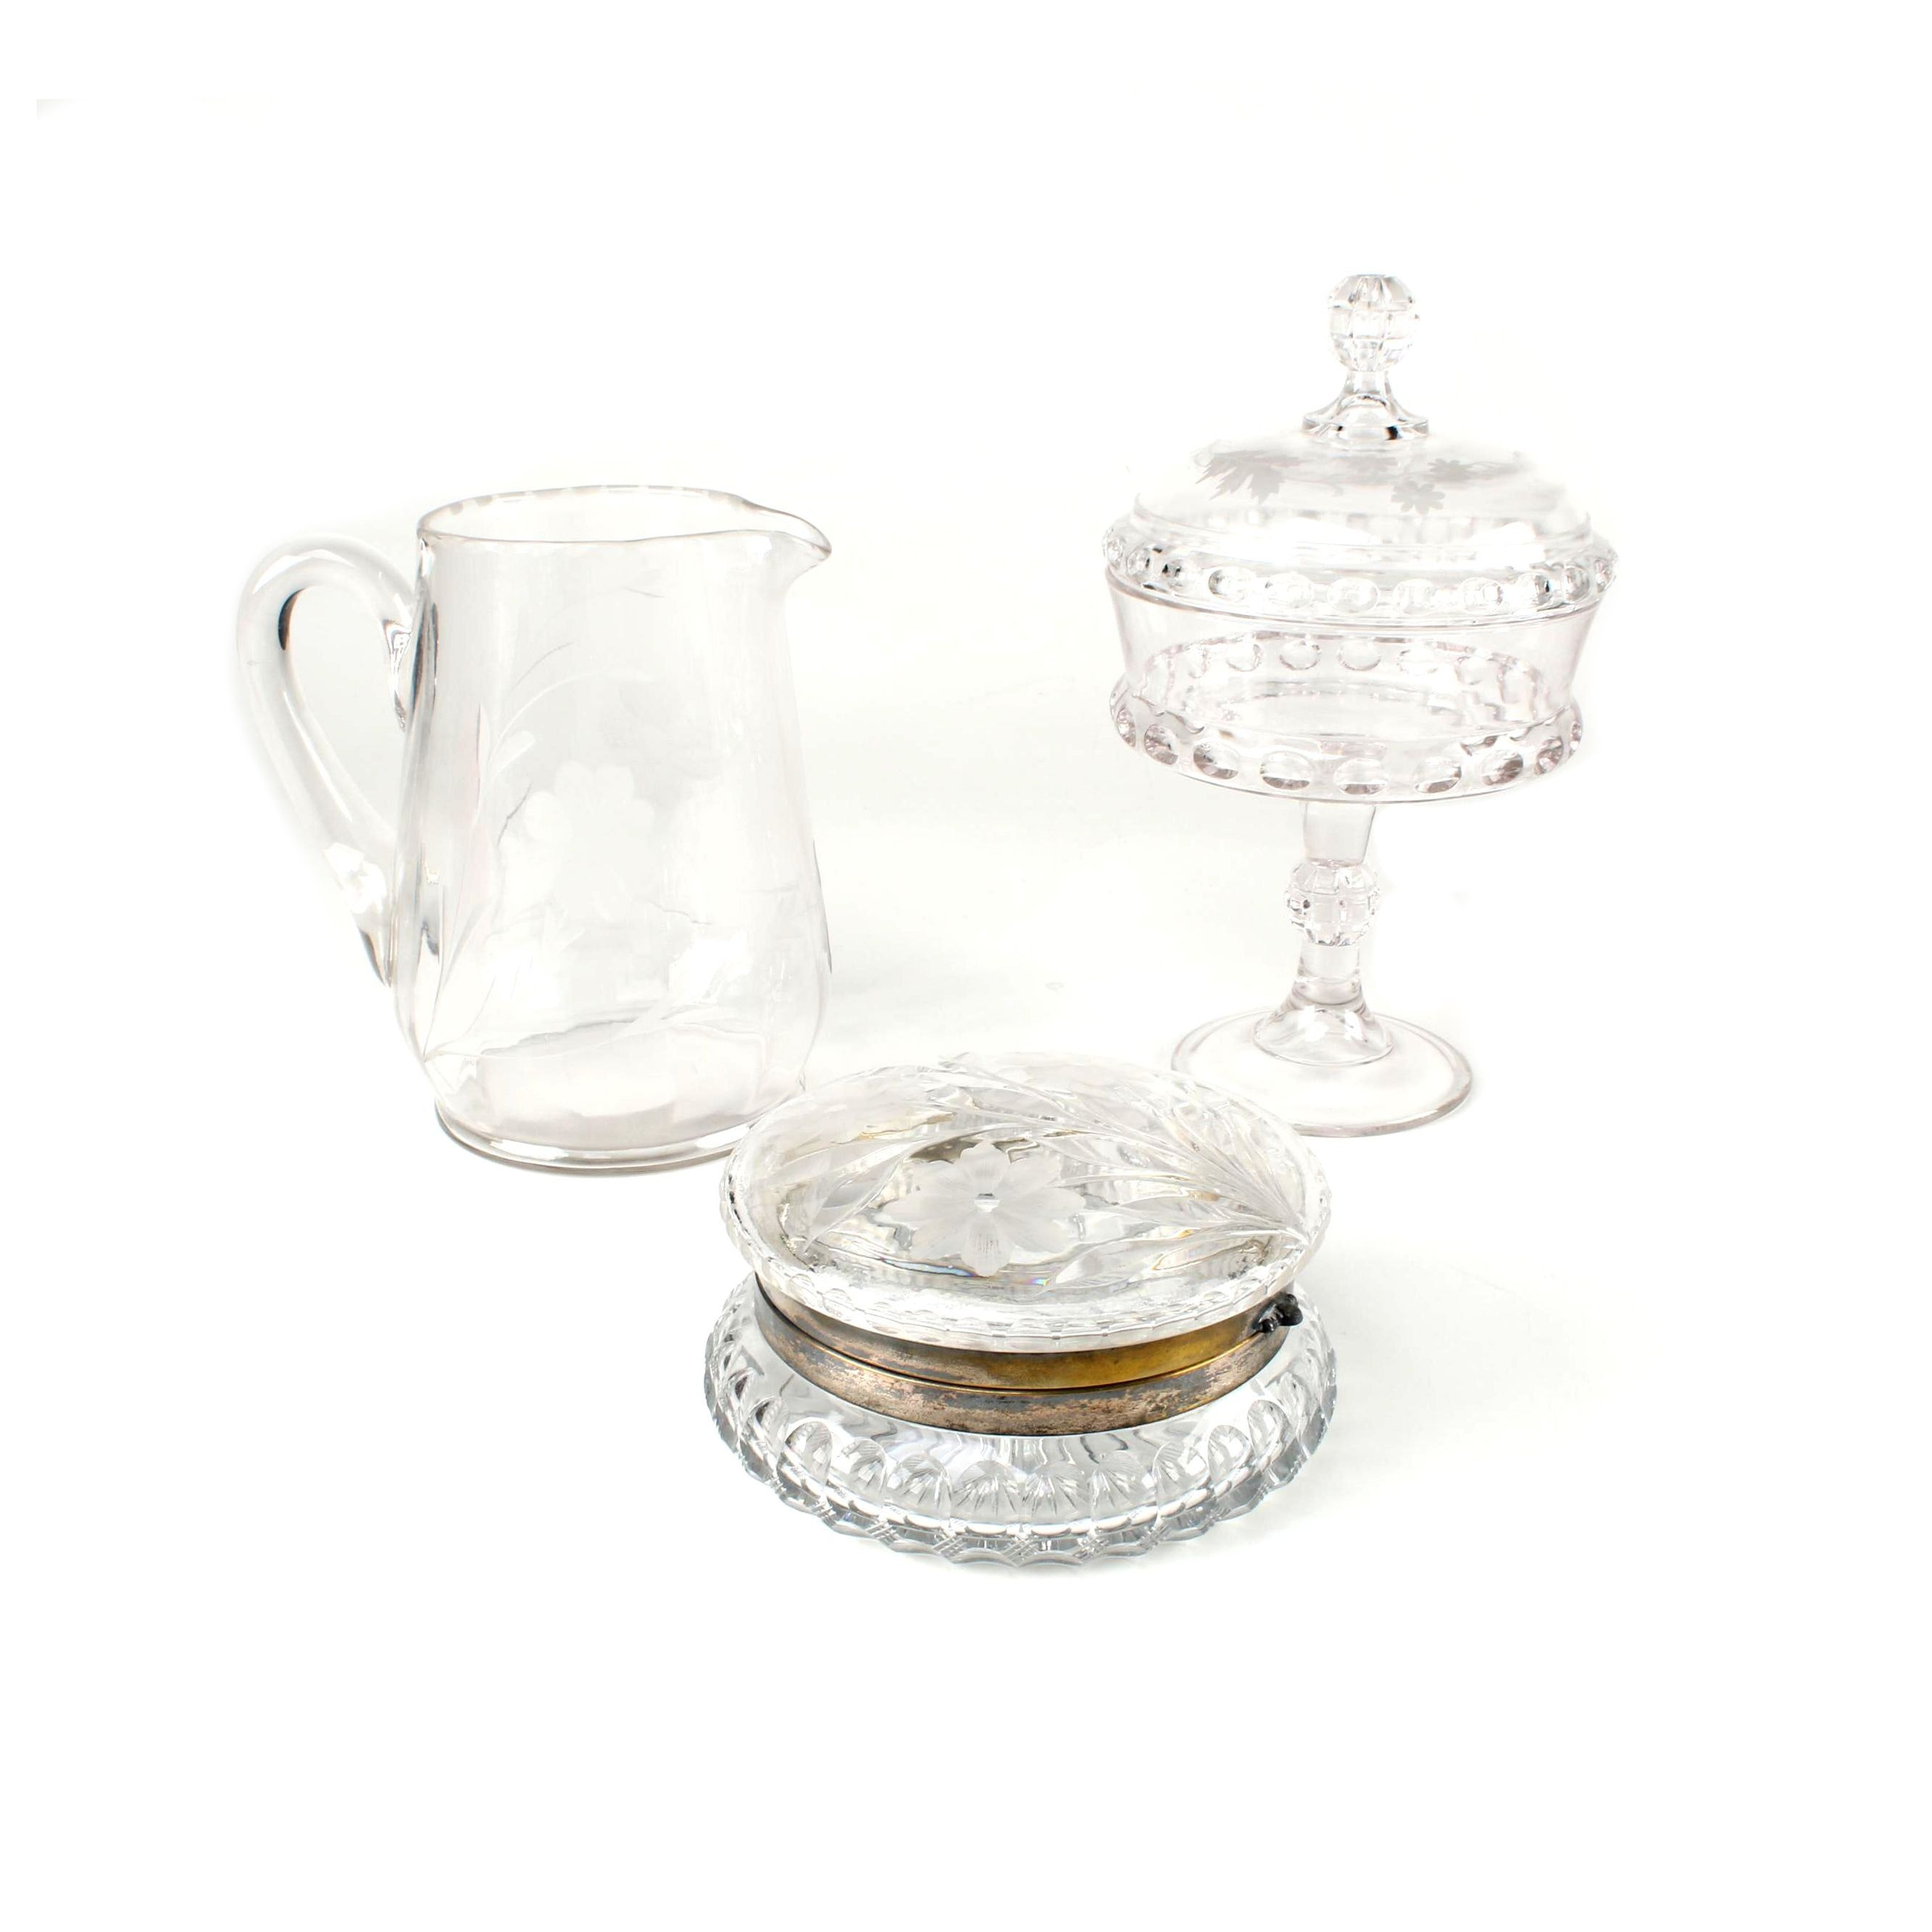 Glass Serveware with Crystal and Silver Plate Candy Dish